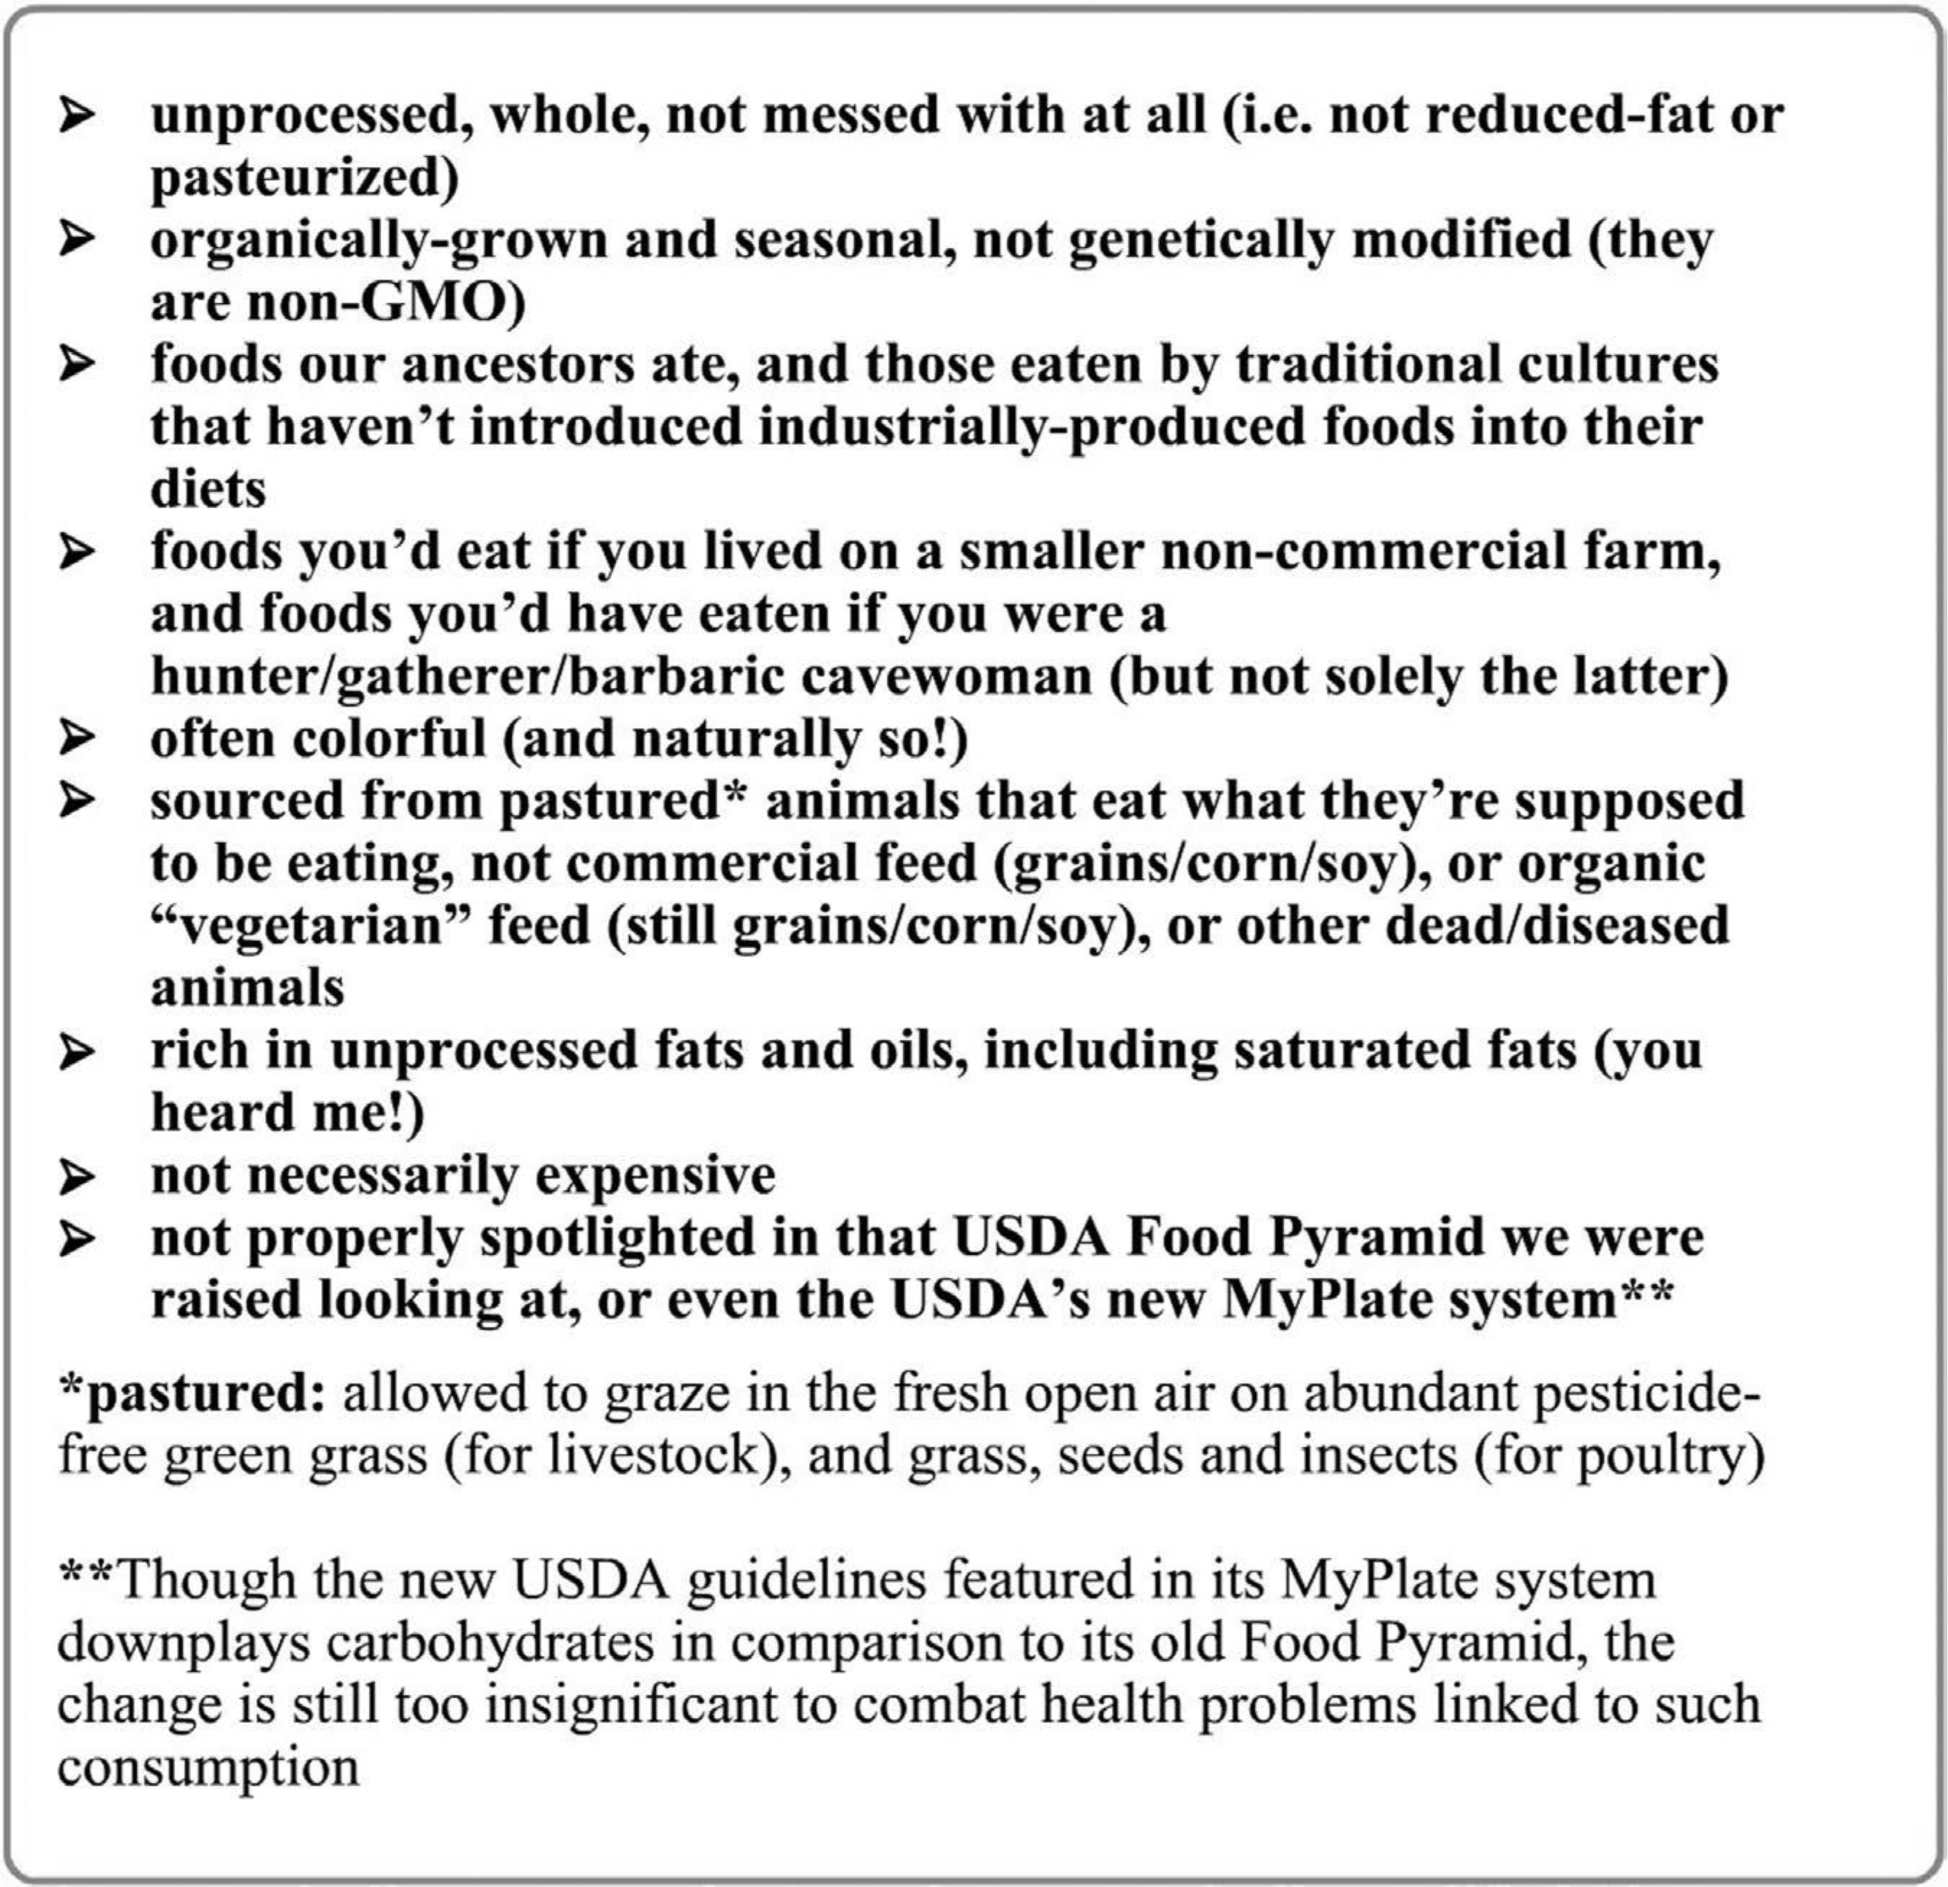 Anti-Inflammatory Nutrient-Dense Foods for the Goddess Copyright © 2013 Erika Herman, excerpted from Eat Like a Fatass, Look Like a Goddess: The Untold Story of Healthy Foods. Any and all use of this image without crediting its author is strictly prohibited.